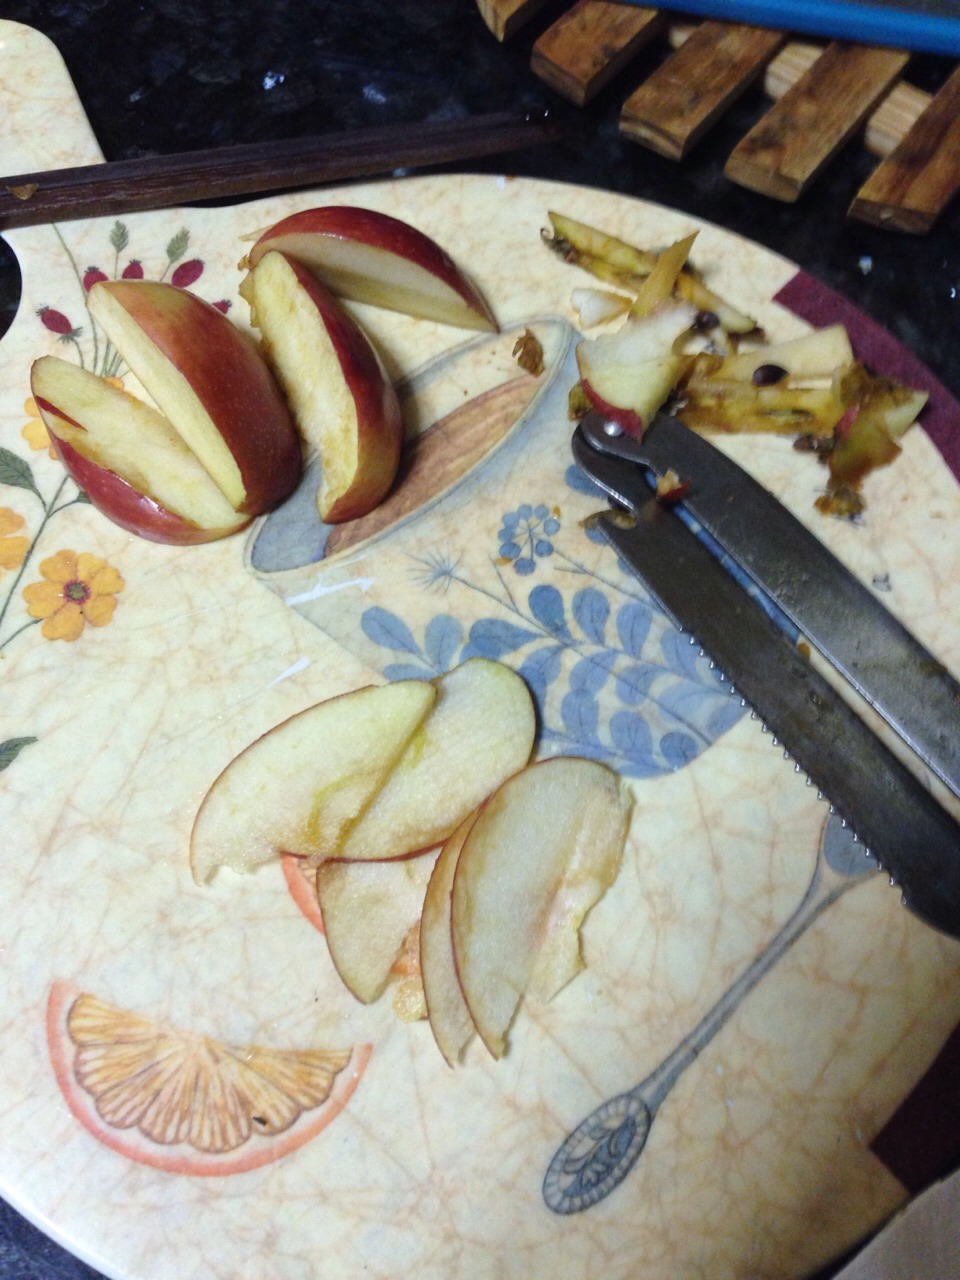 Wash and cut the apples in half Take out the seeds and cut in half again so you have 4 quarters  Now slice the apple in thin slices. The thiner the better. (I used a vegetable peeler)